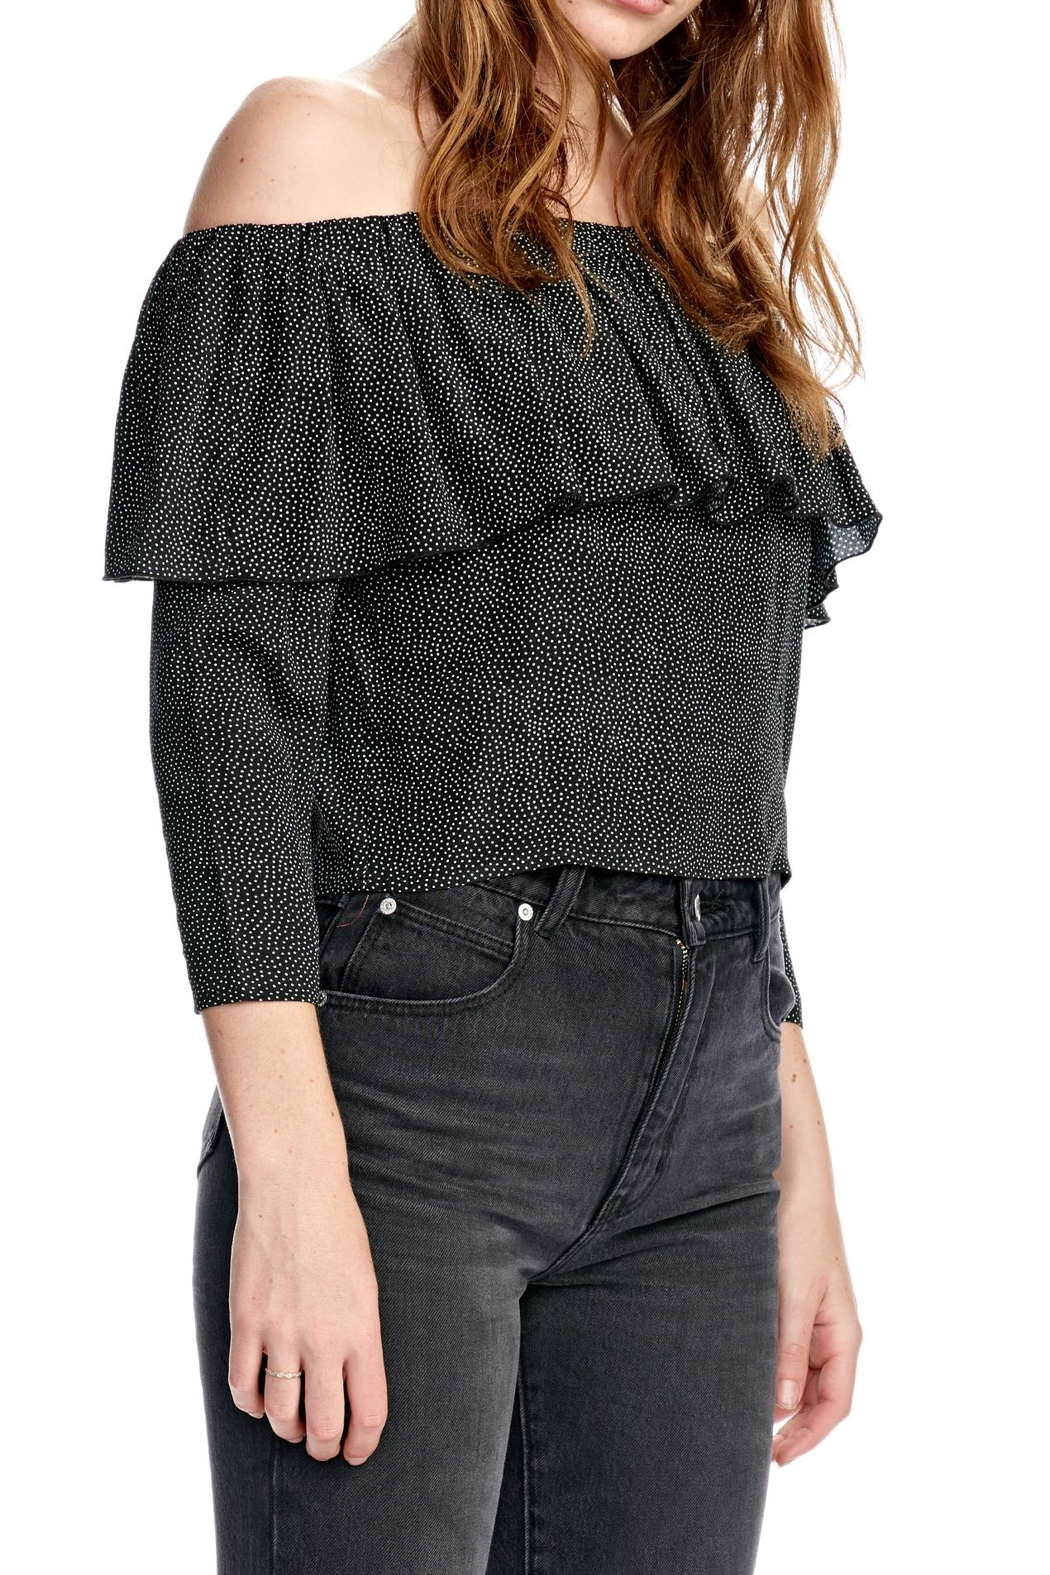 ROLLAS Kelsey Top - Front Full Image